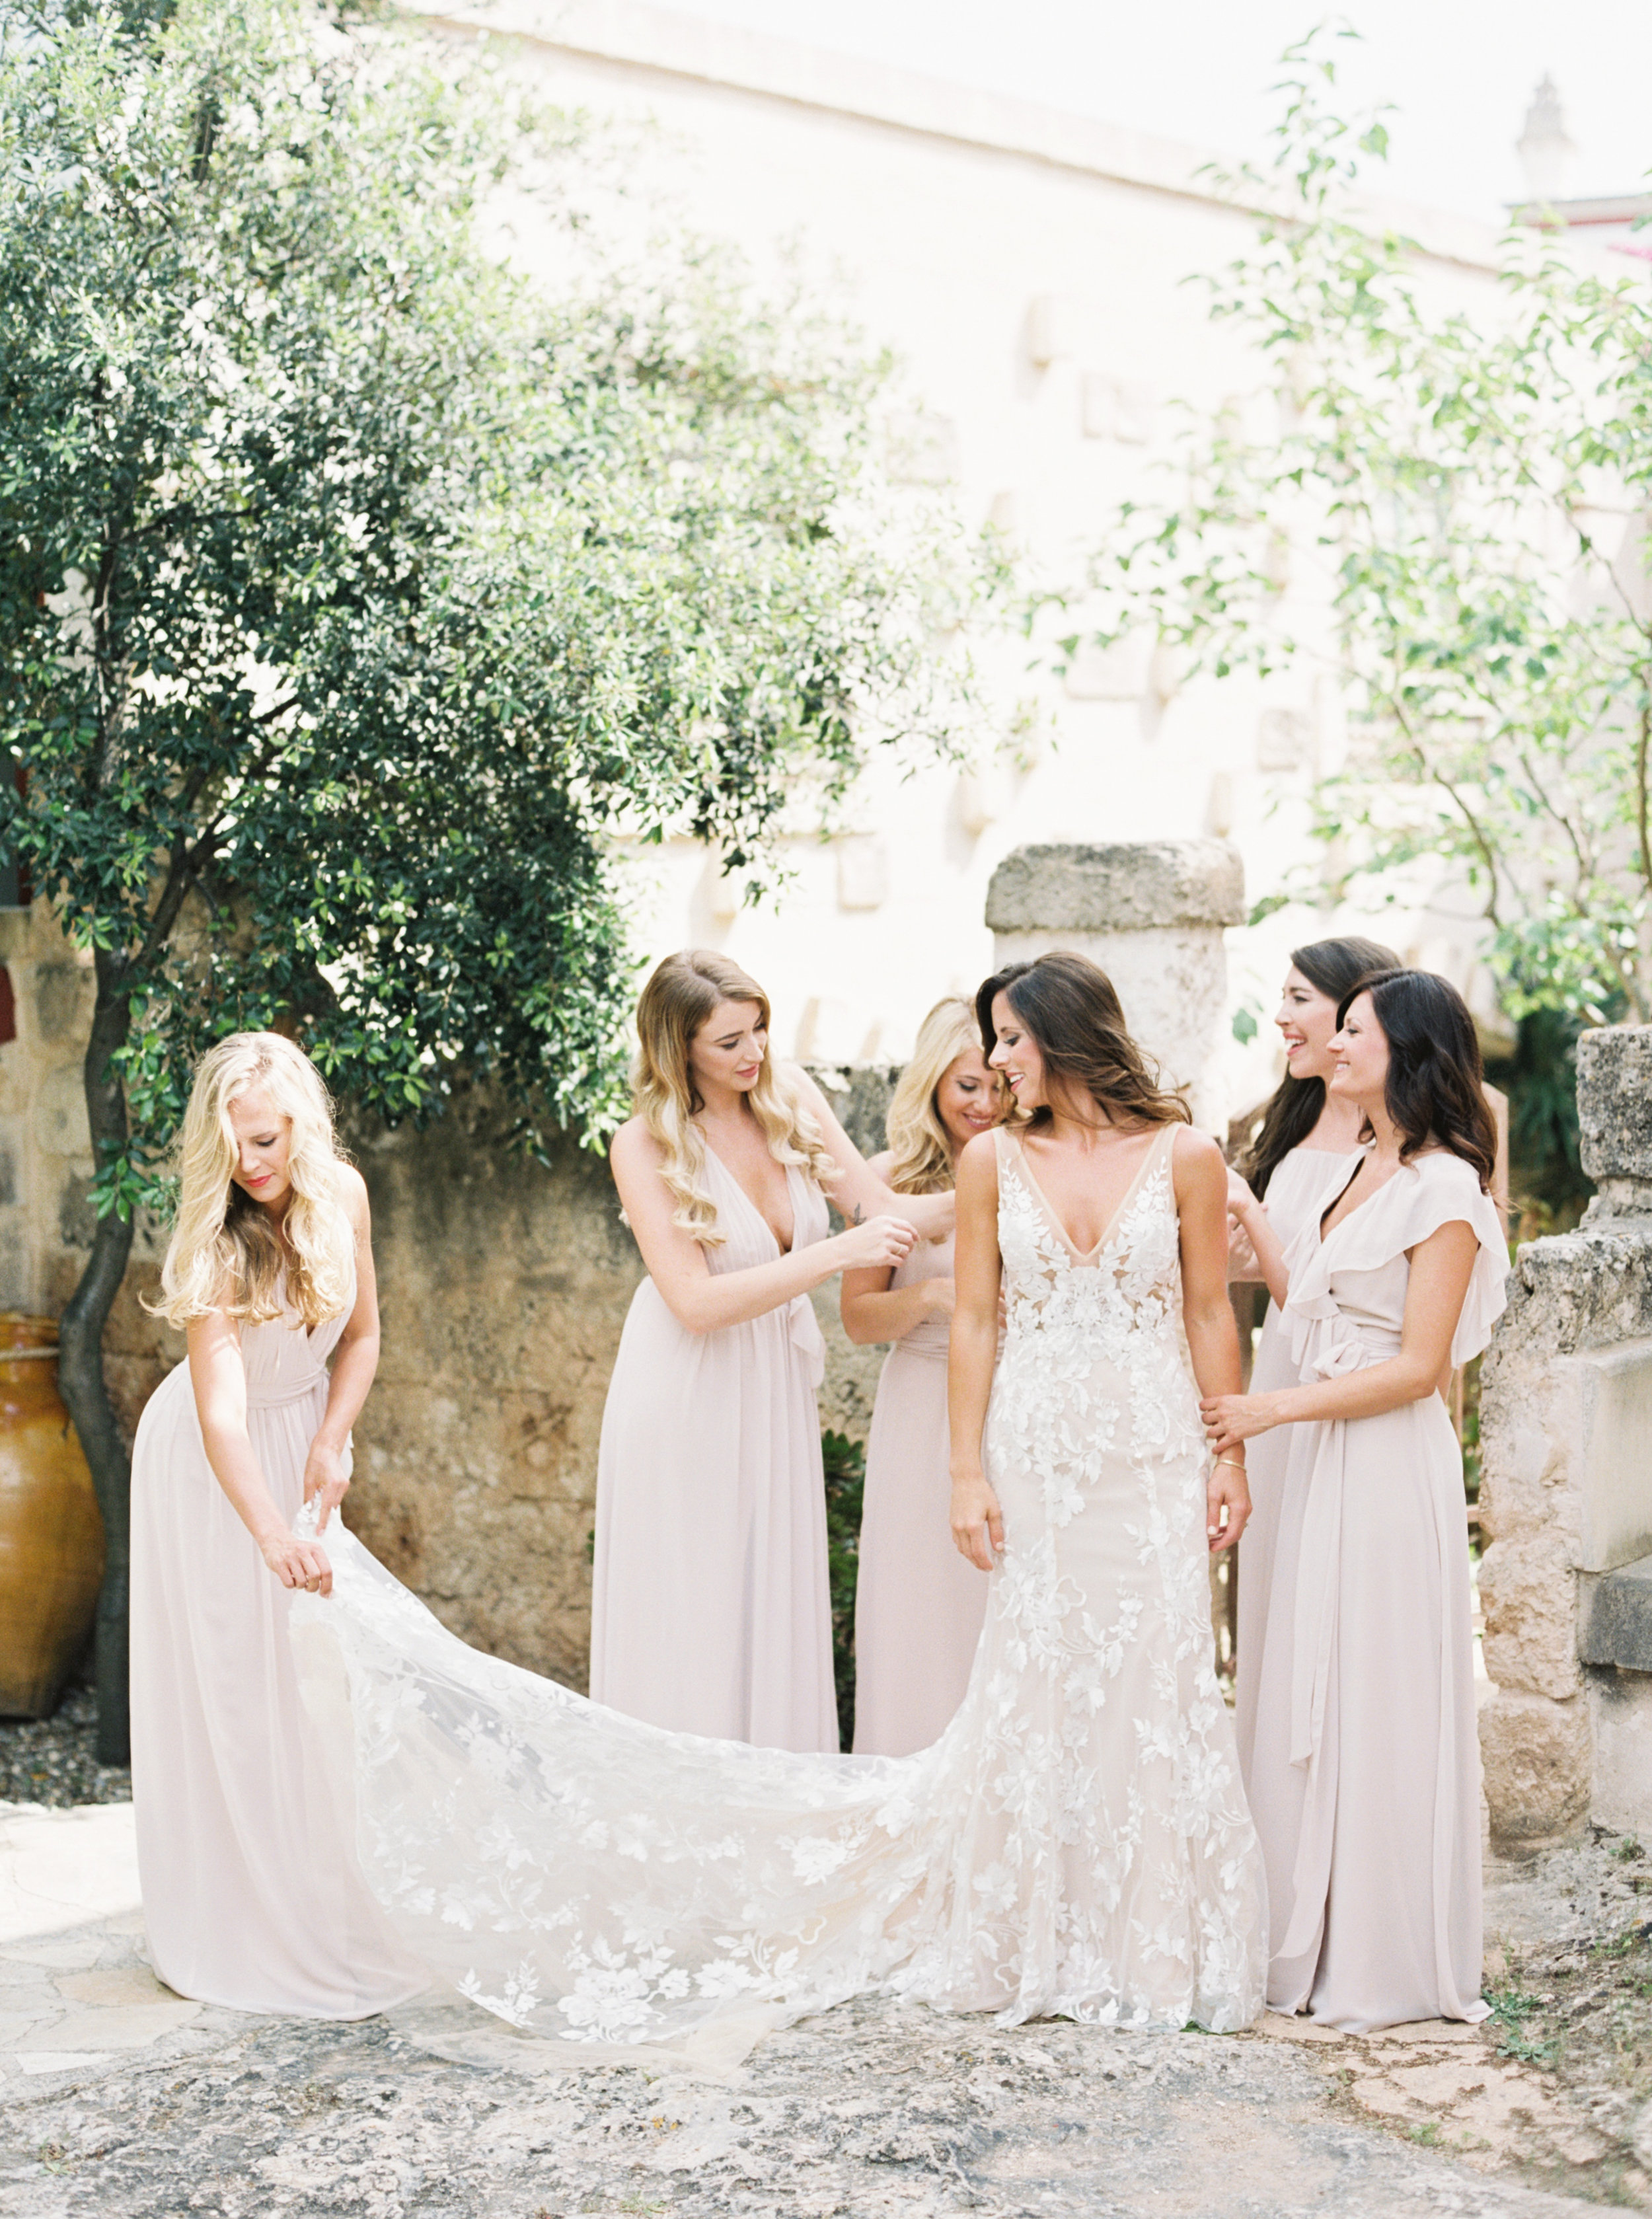 Southern Italy wedding planned by Meggie Francisco. Photography by Tracy Enoch, video by Innar Hunt.